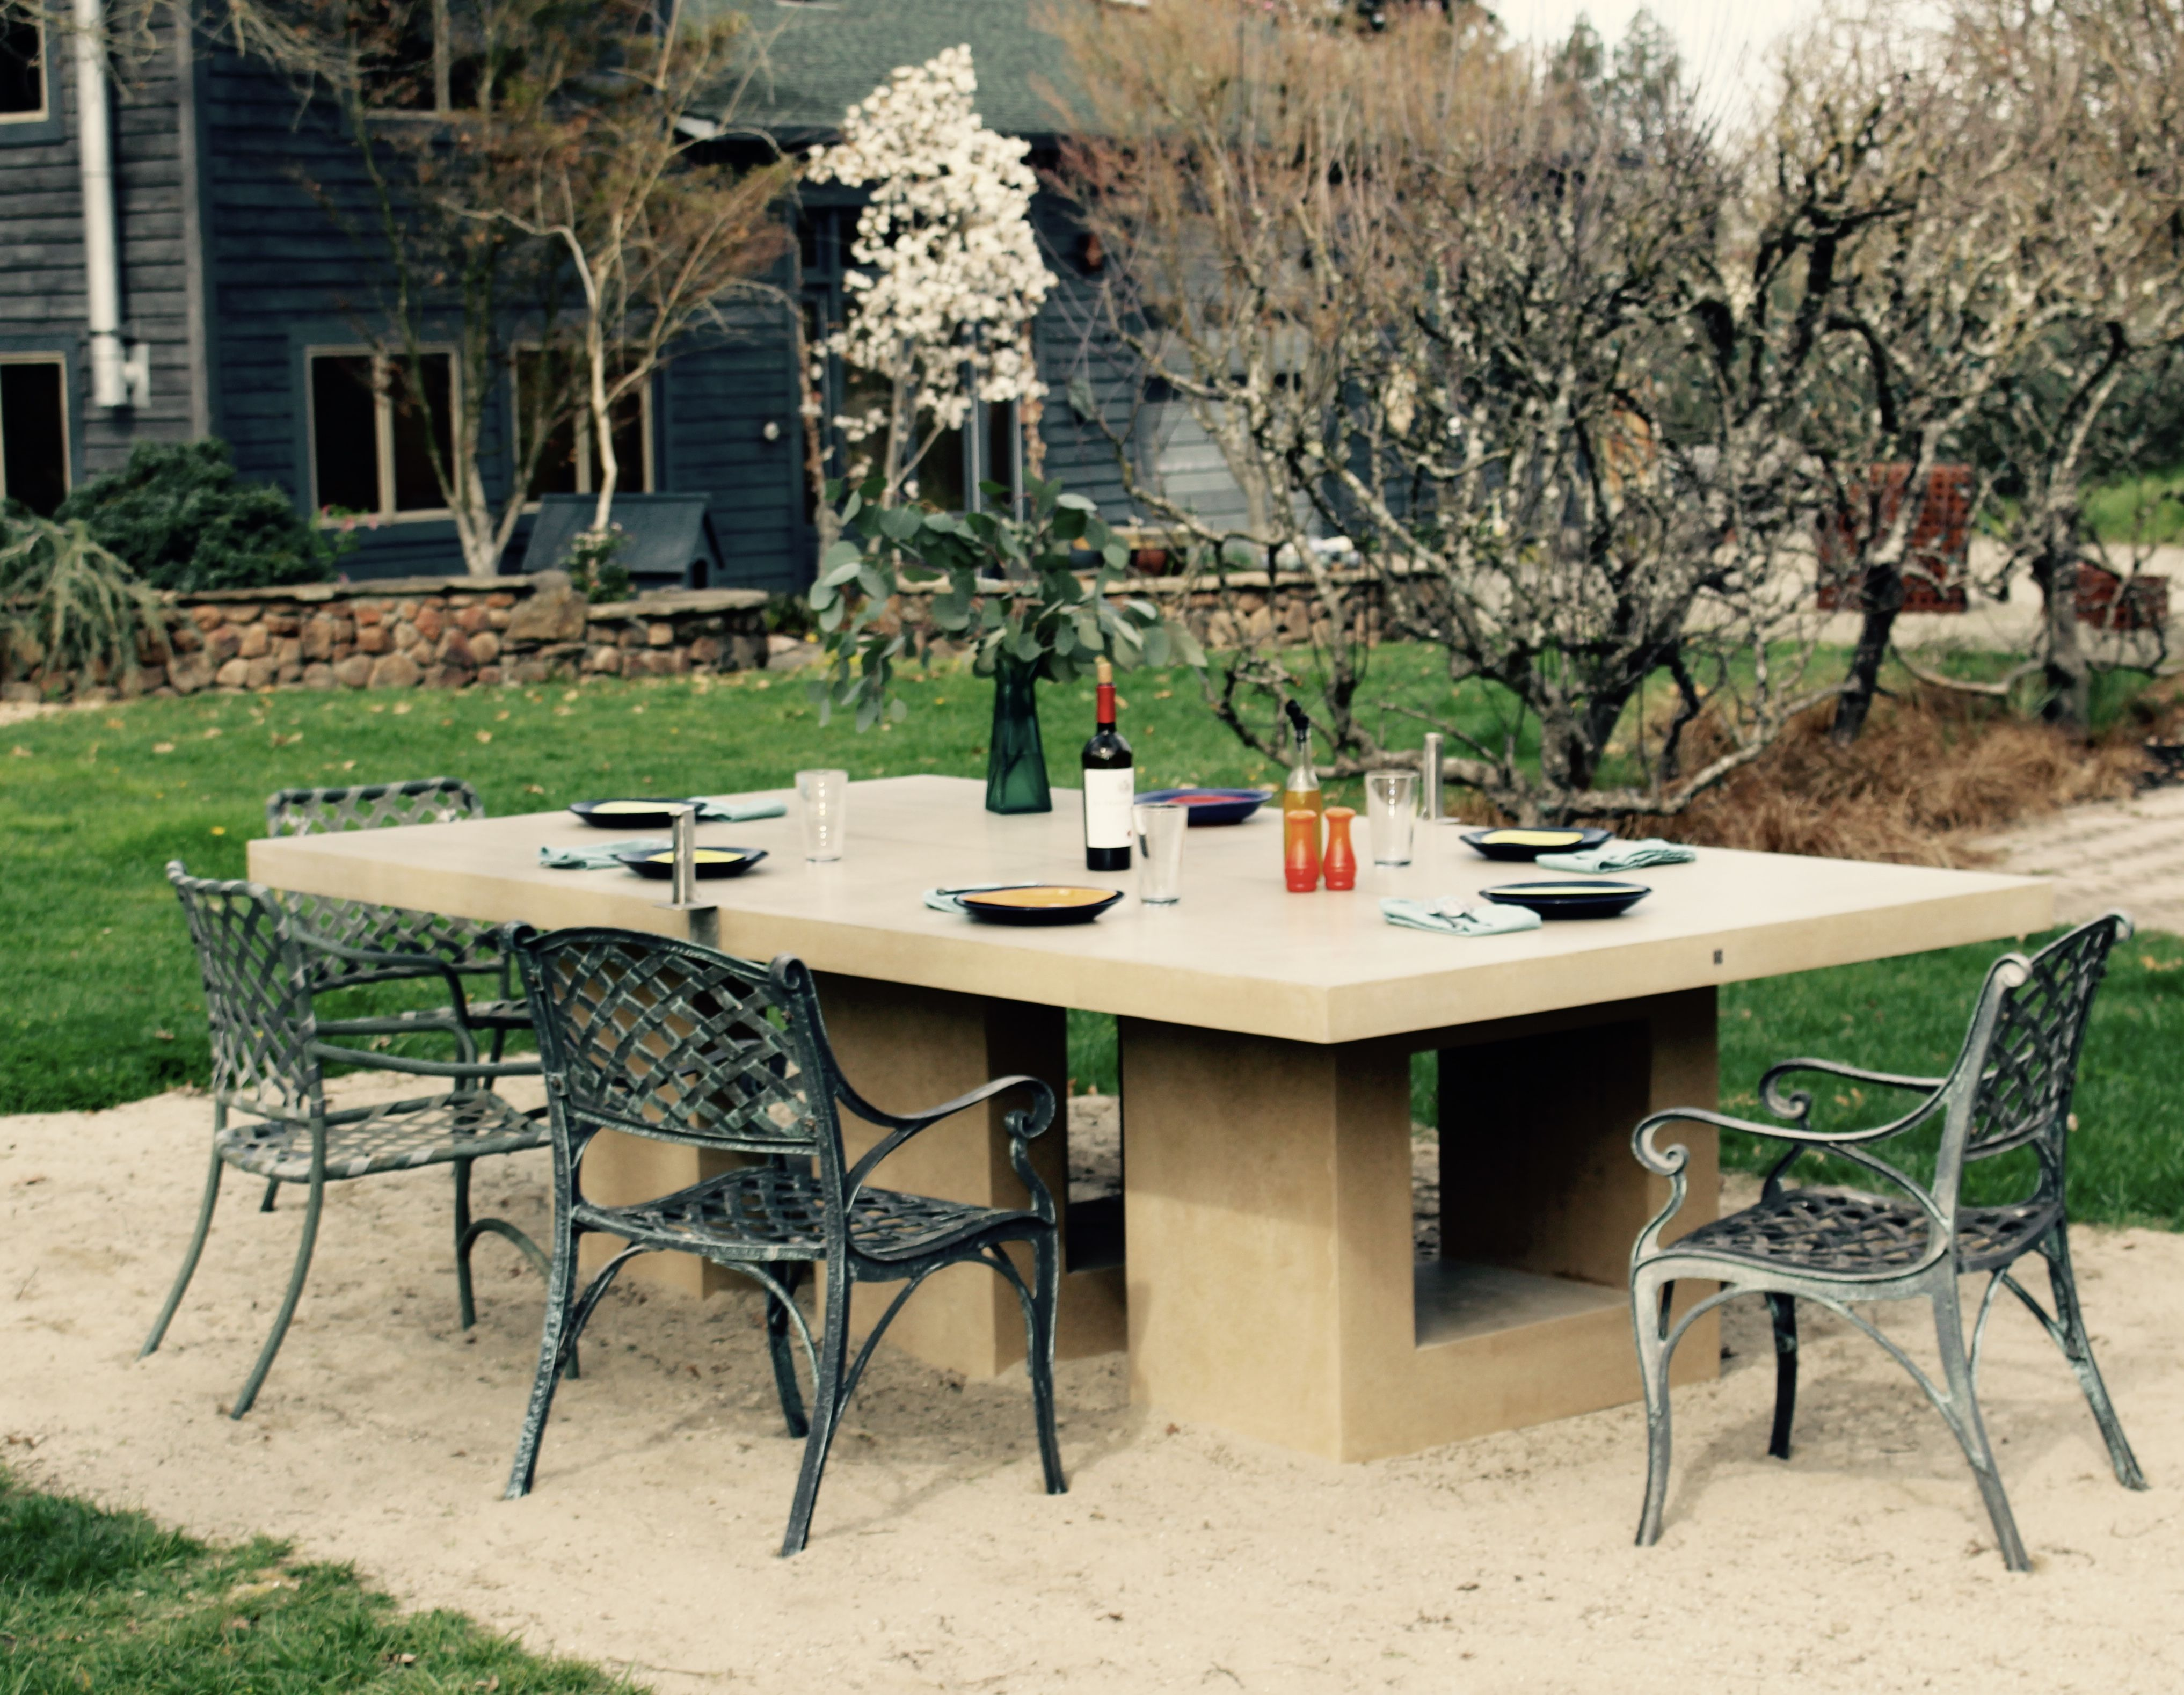 Concrete Ping Pong Table Doubles As Outdoor Dining Table Outdoor